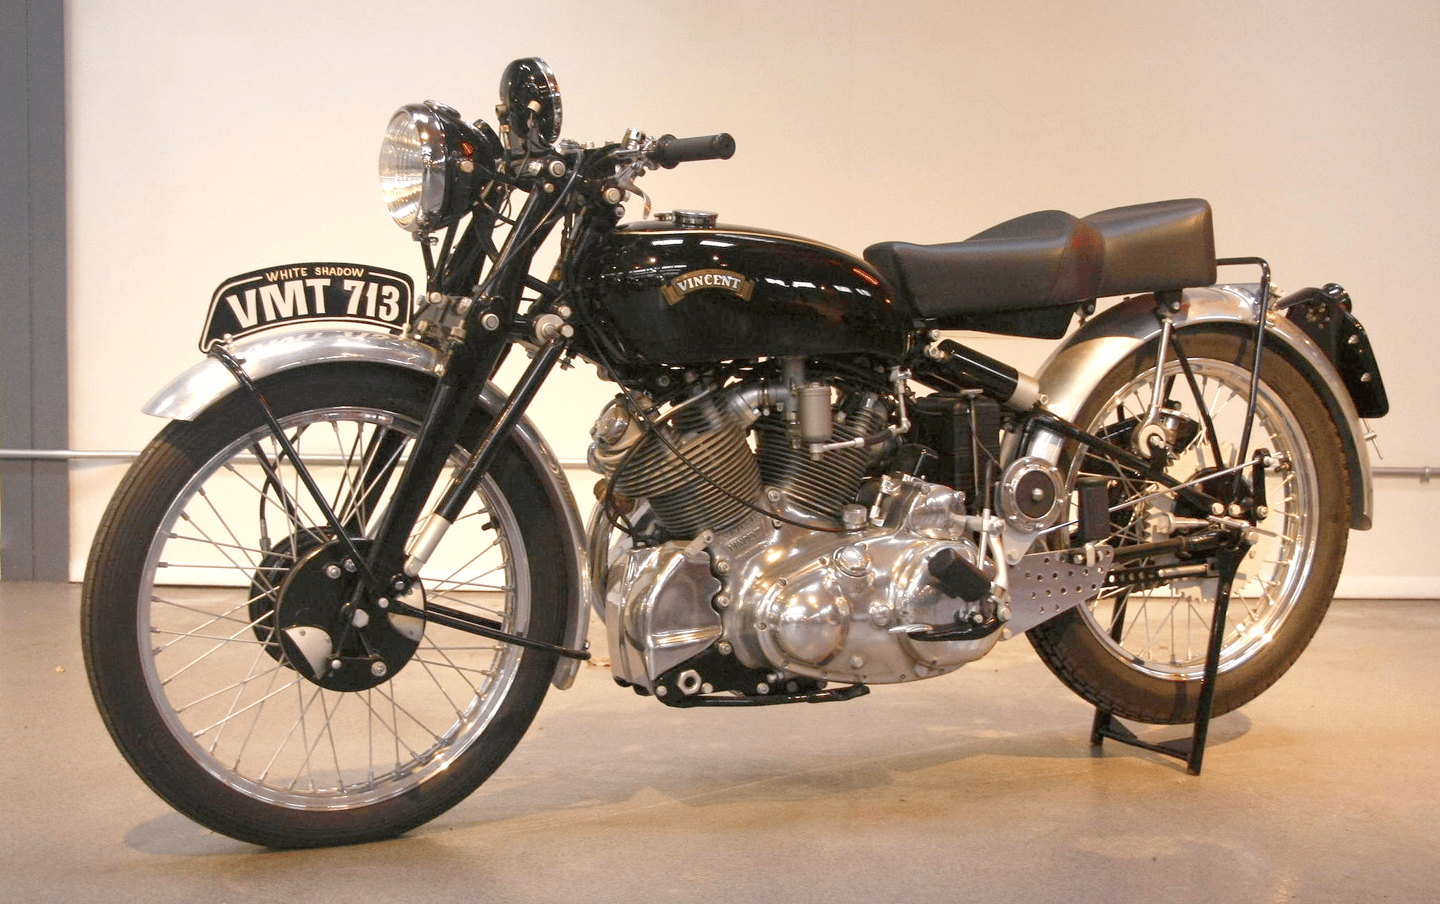 One of only 15 ever produced, this 1950 Vincent Series C White Shadow was sold for US$111,150 at the Quail Motorcycle Gathering in May, 2009. A complete restoration and return to absolute originality ensued, resulting in the bike fetching US$224,250 at auction on January 9, 2015.